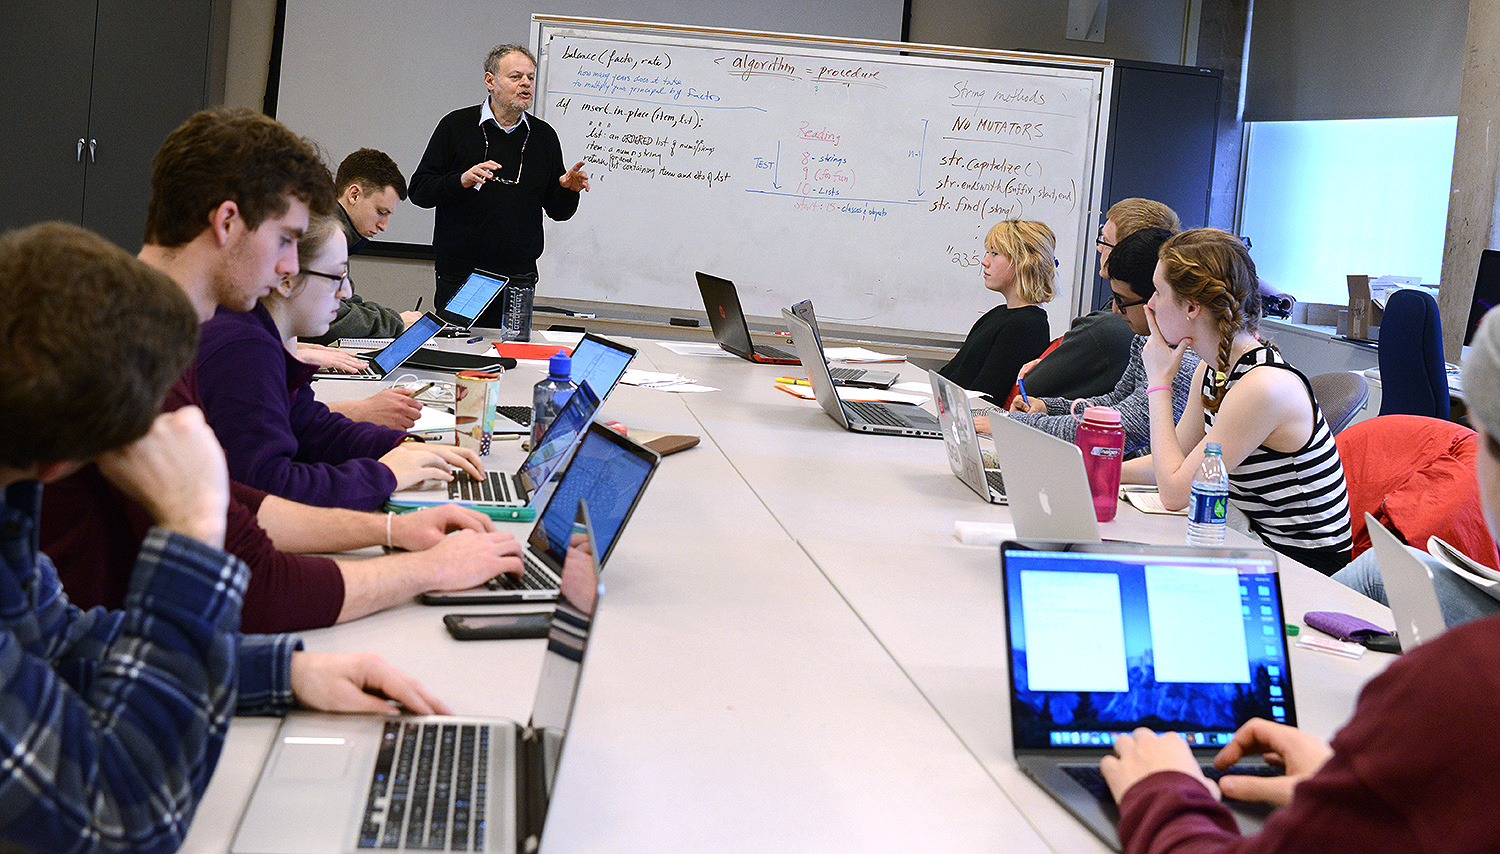 James Lipton, professor of computer science, teaches Introduction to Programming on Jan. 9. His class is one of seven being taught this January during Wesleyan's fourth Winter Session.